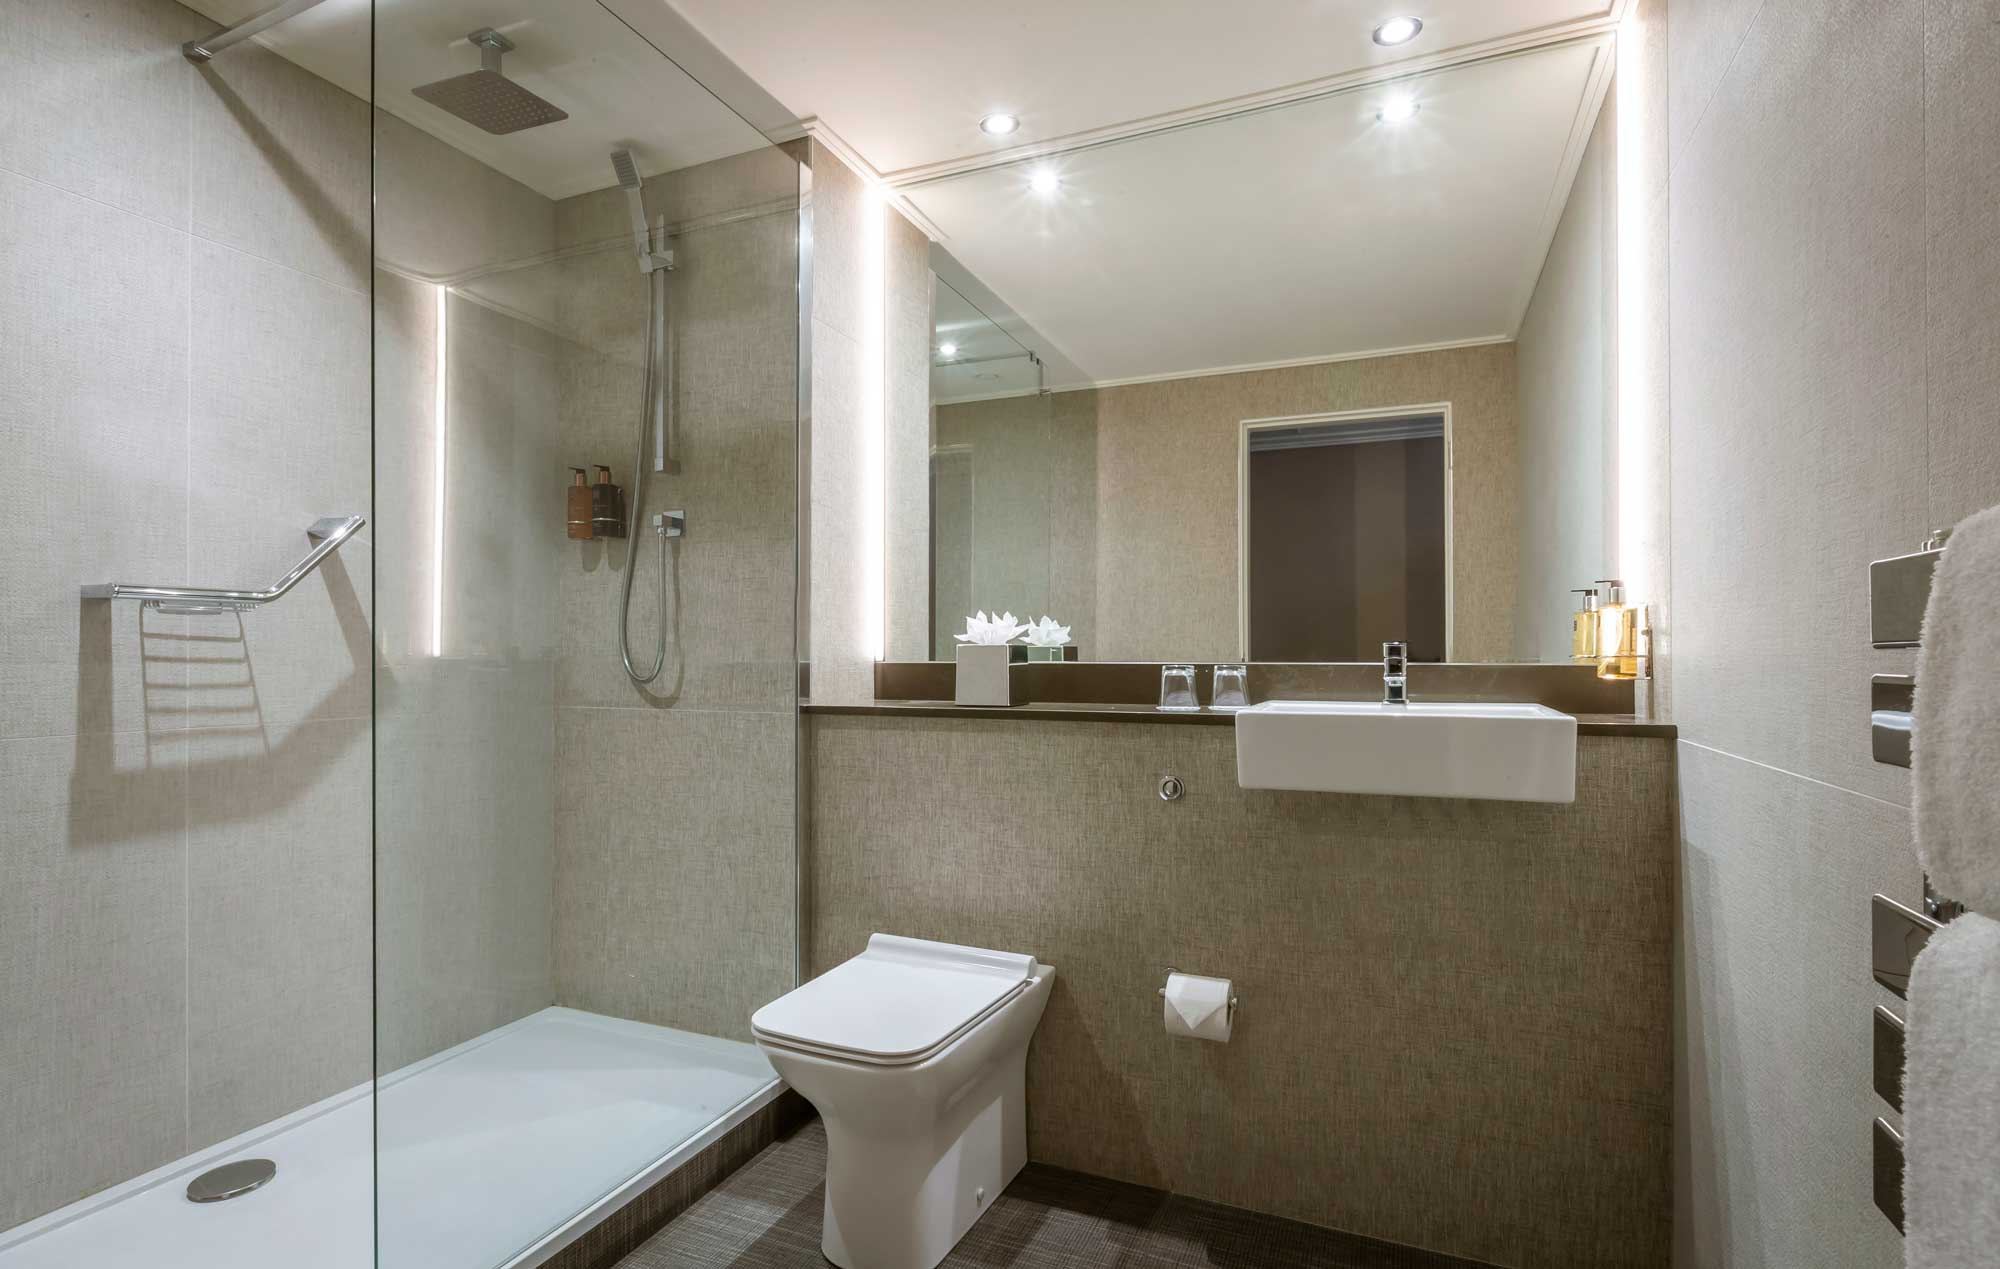 Belvedere-Hotel-Dublin-bathroom-with-shower